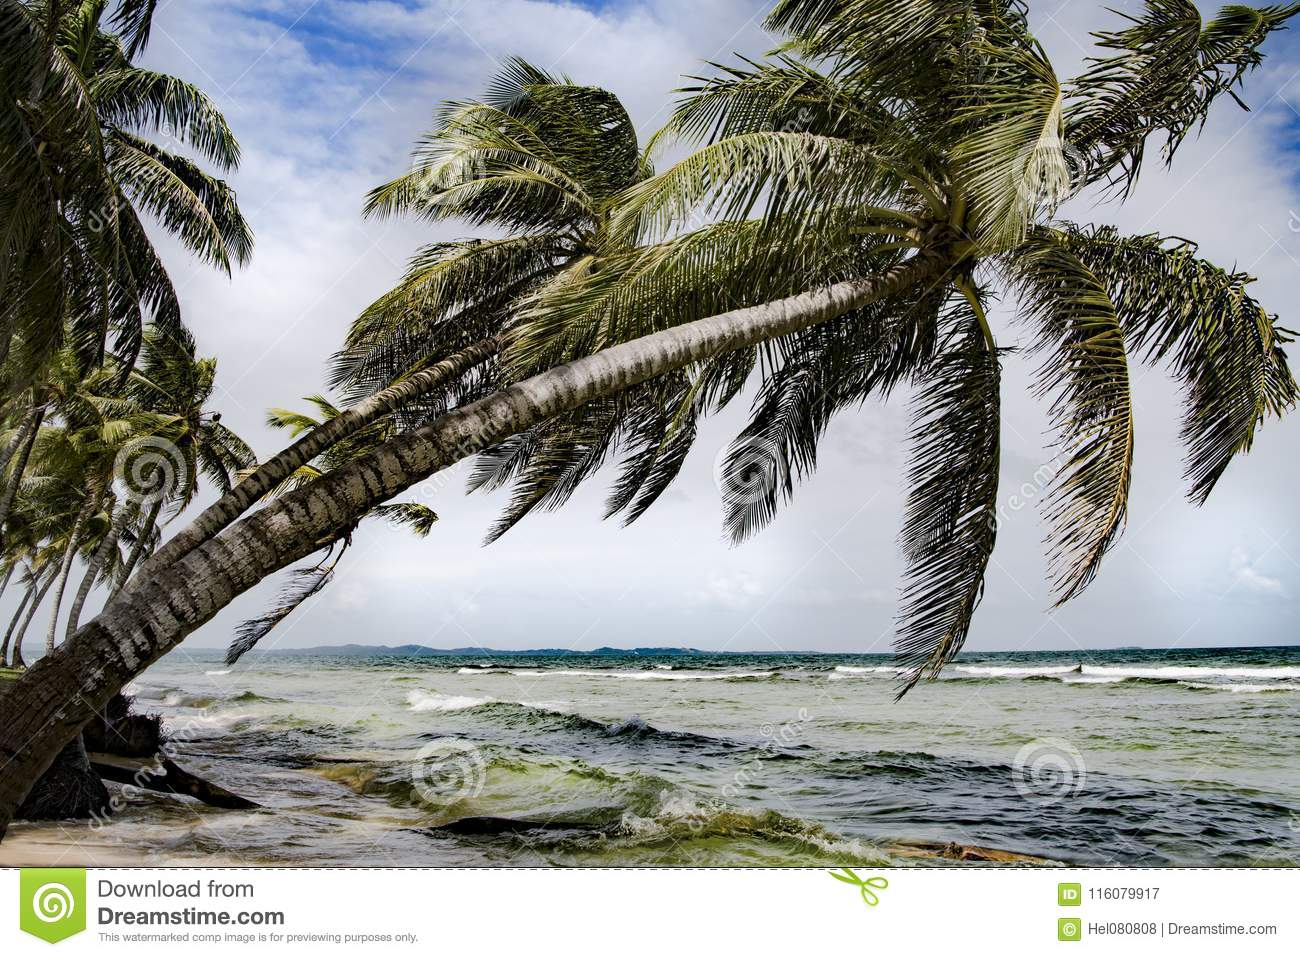 Tropical island with bowed palms, stormy weather, Caribbean sea, Panama